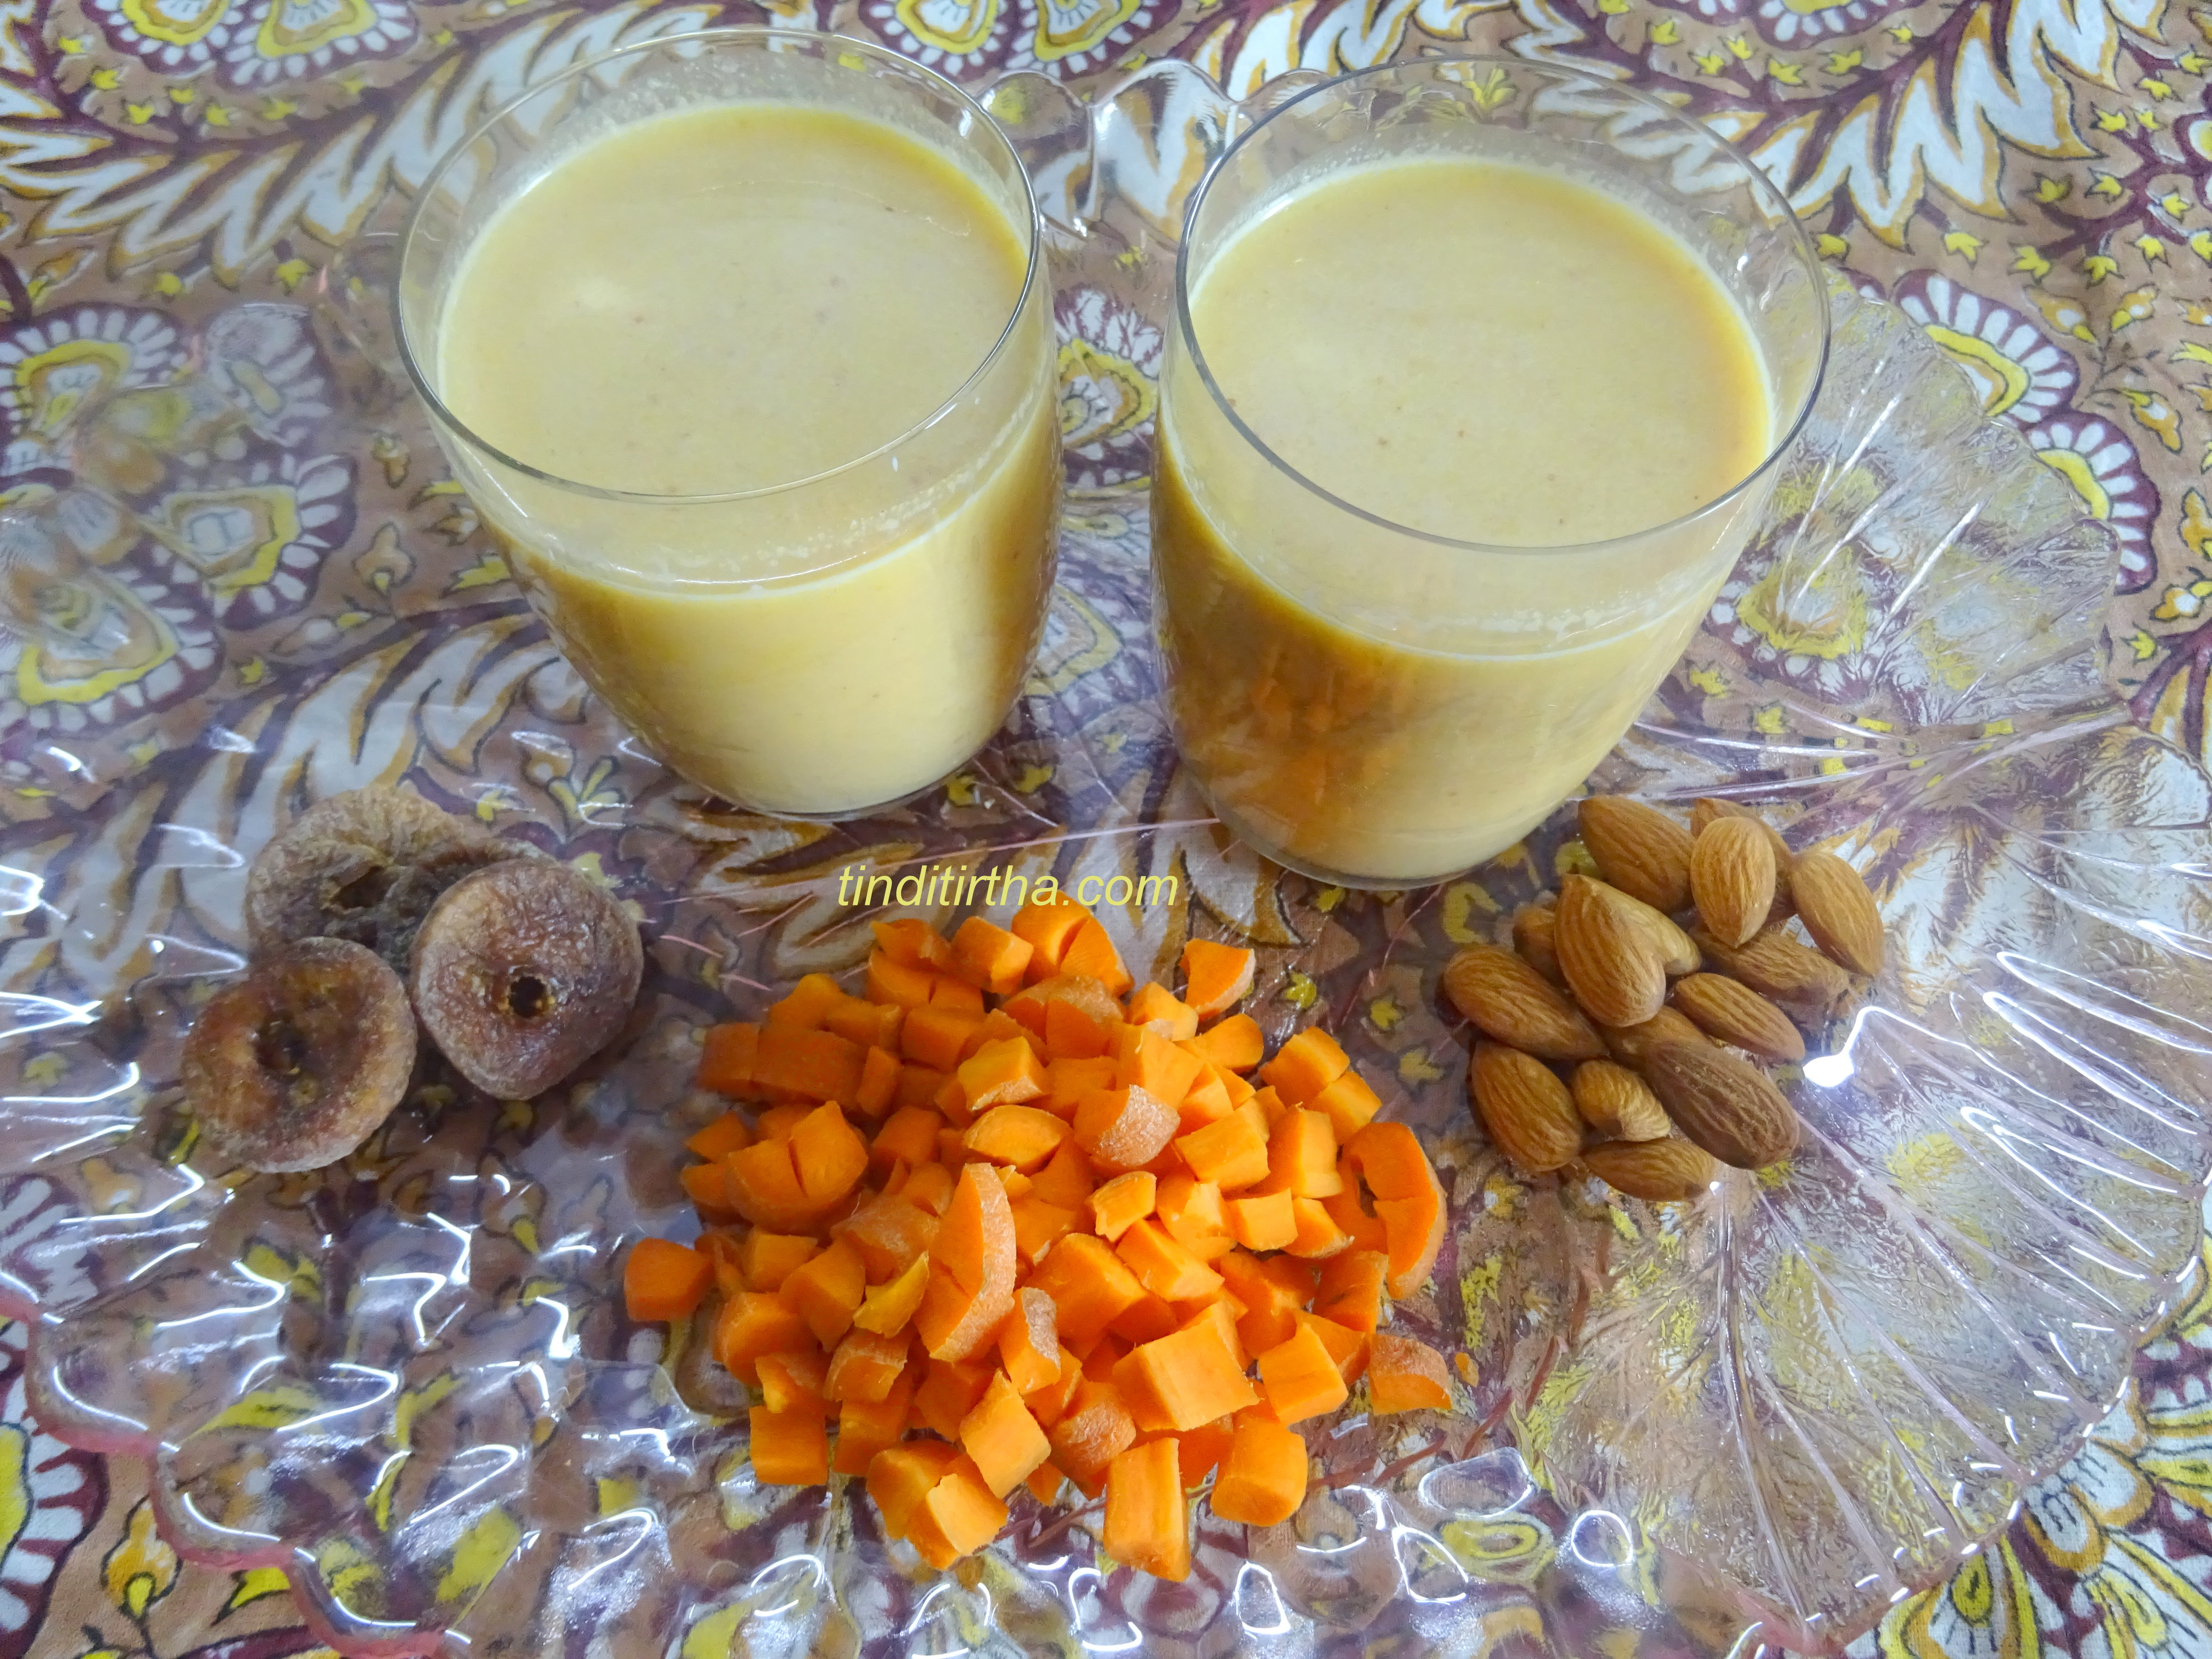 CARROT-ALMOND MILK SHAKE